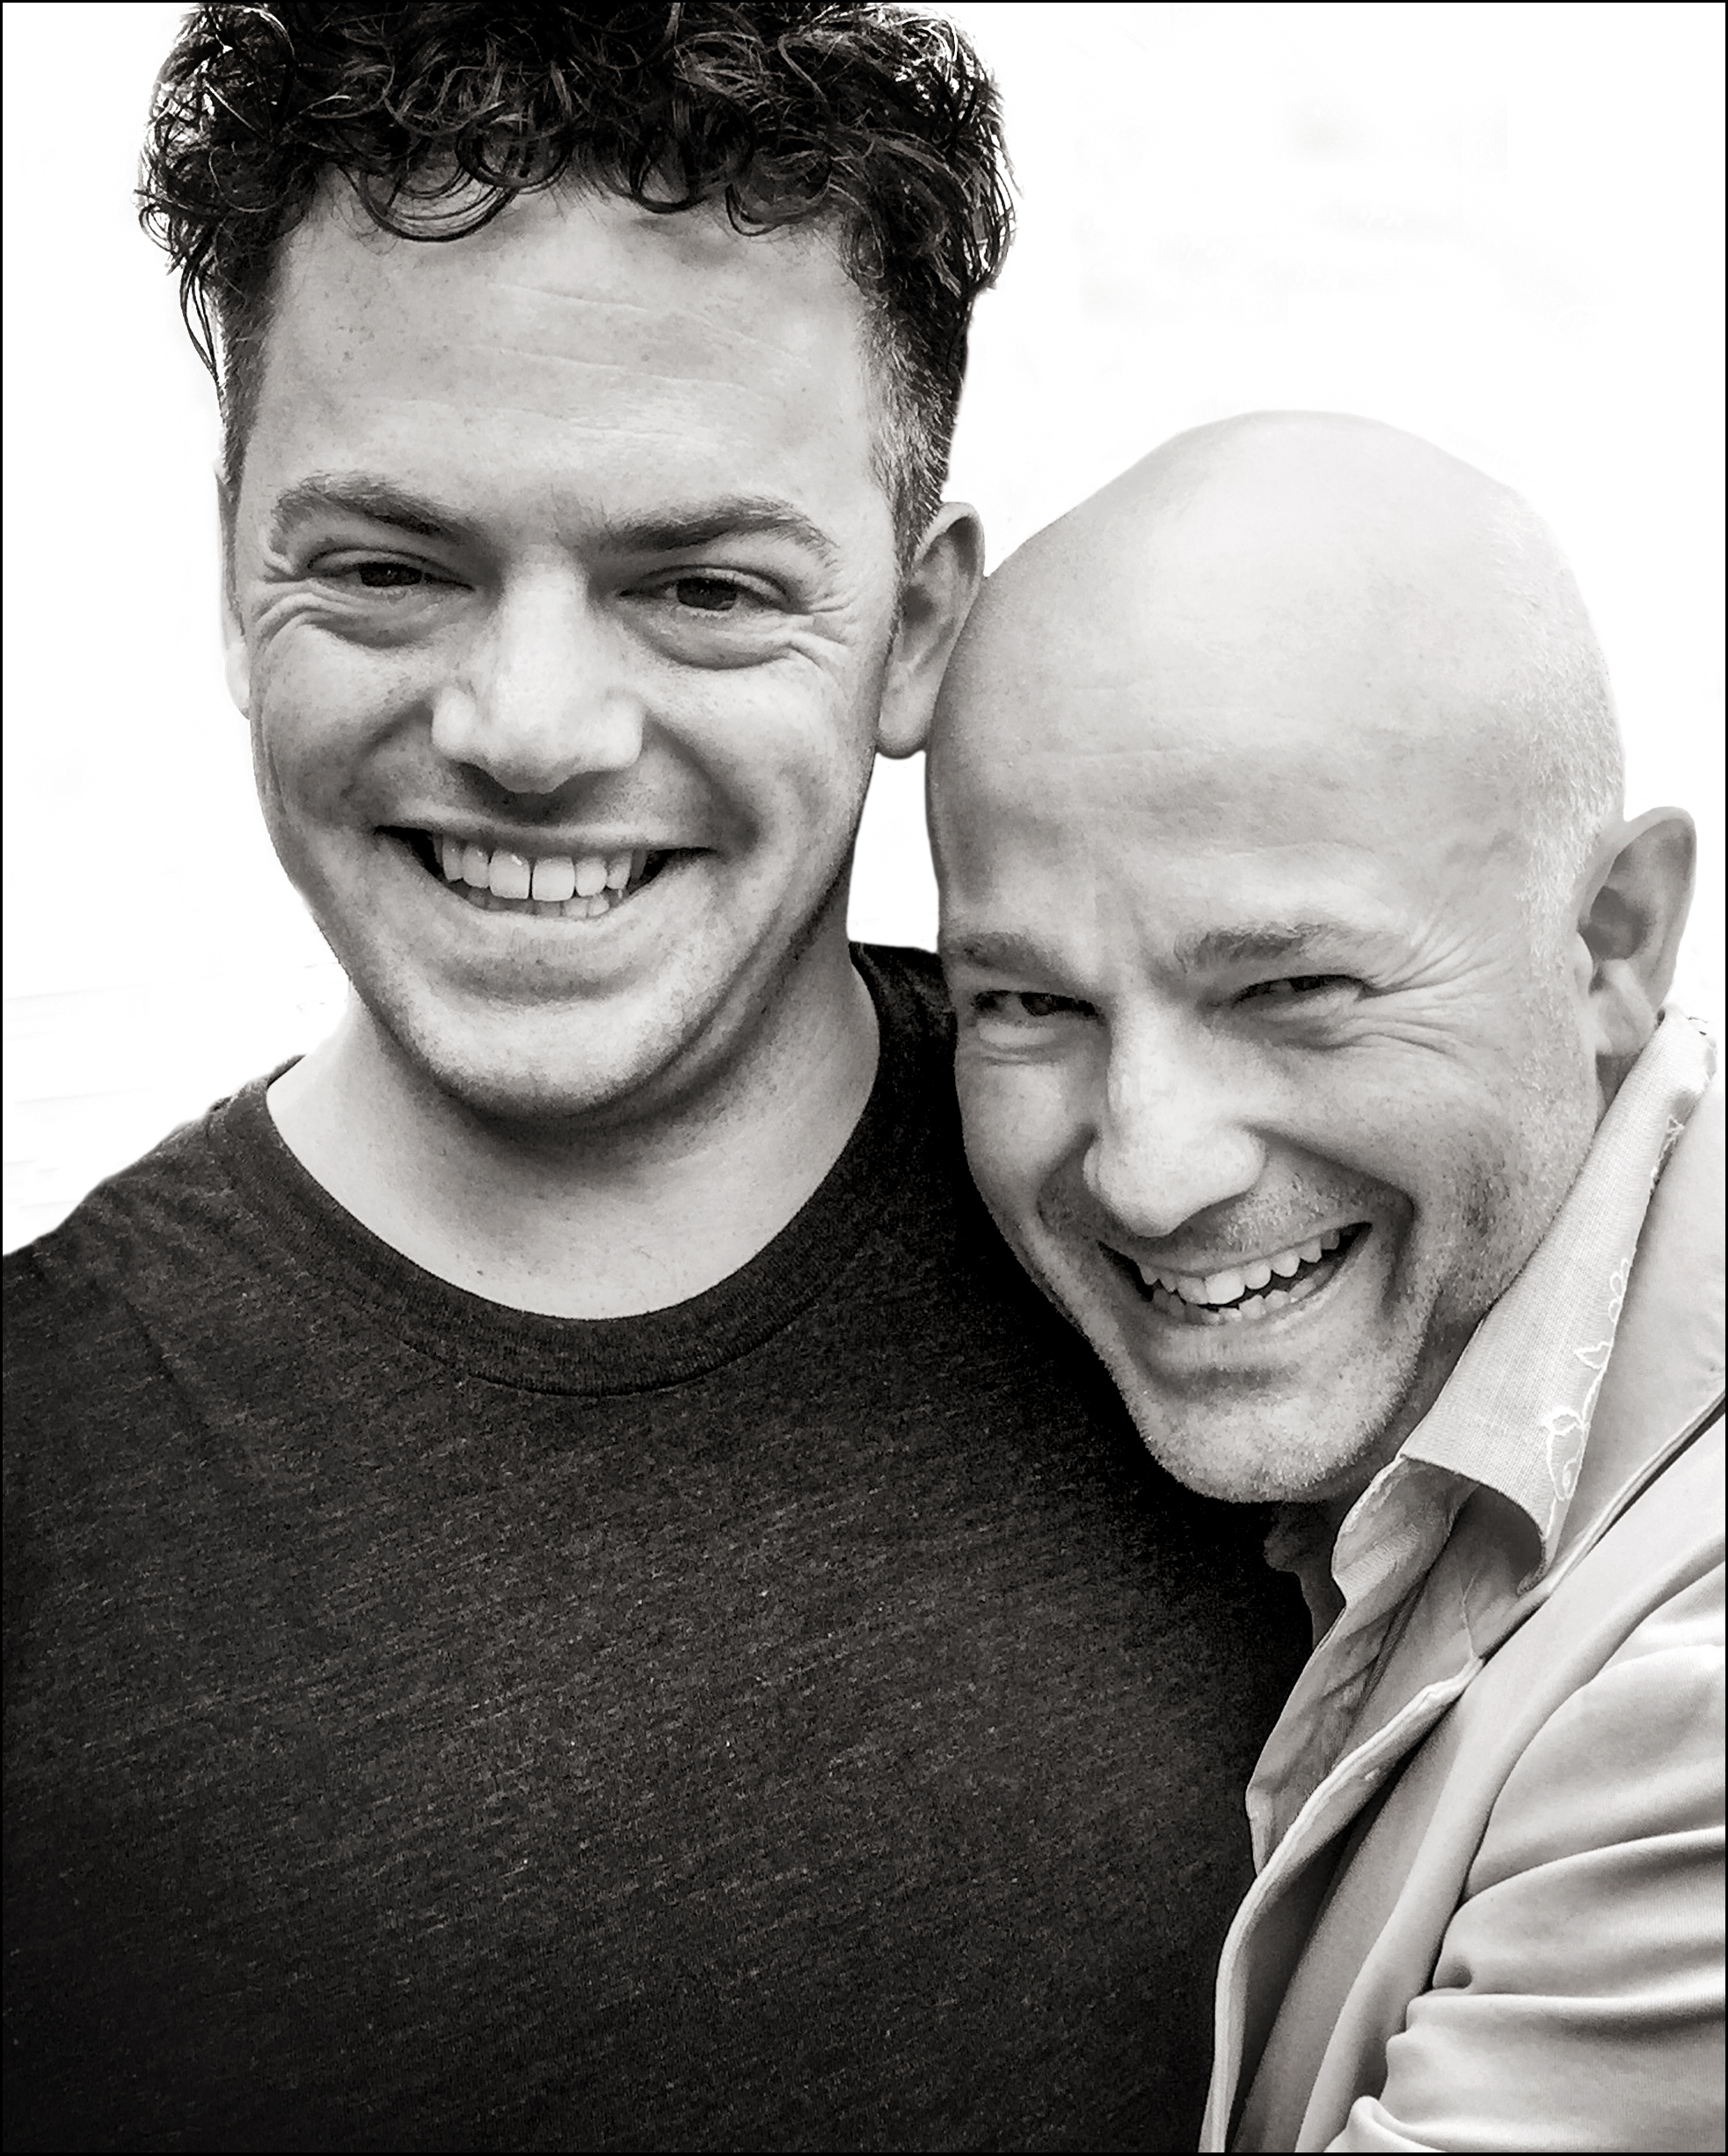 Good friends: Nico Muhly with Charles Owen